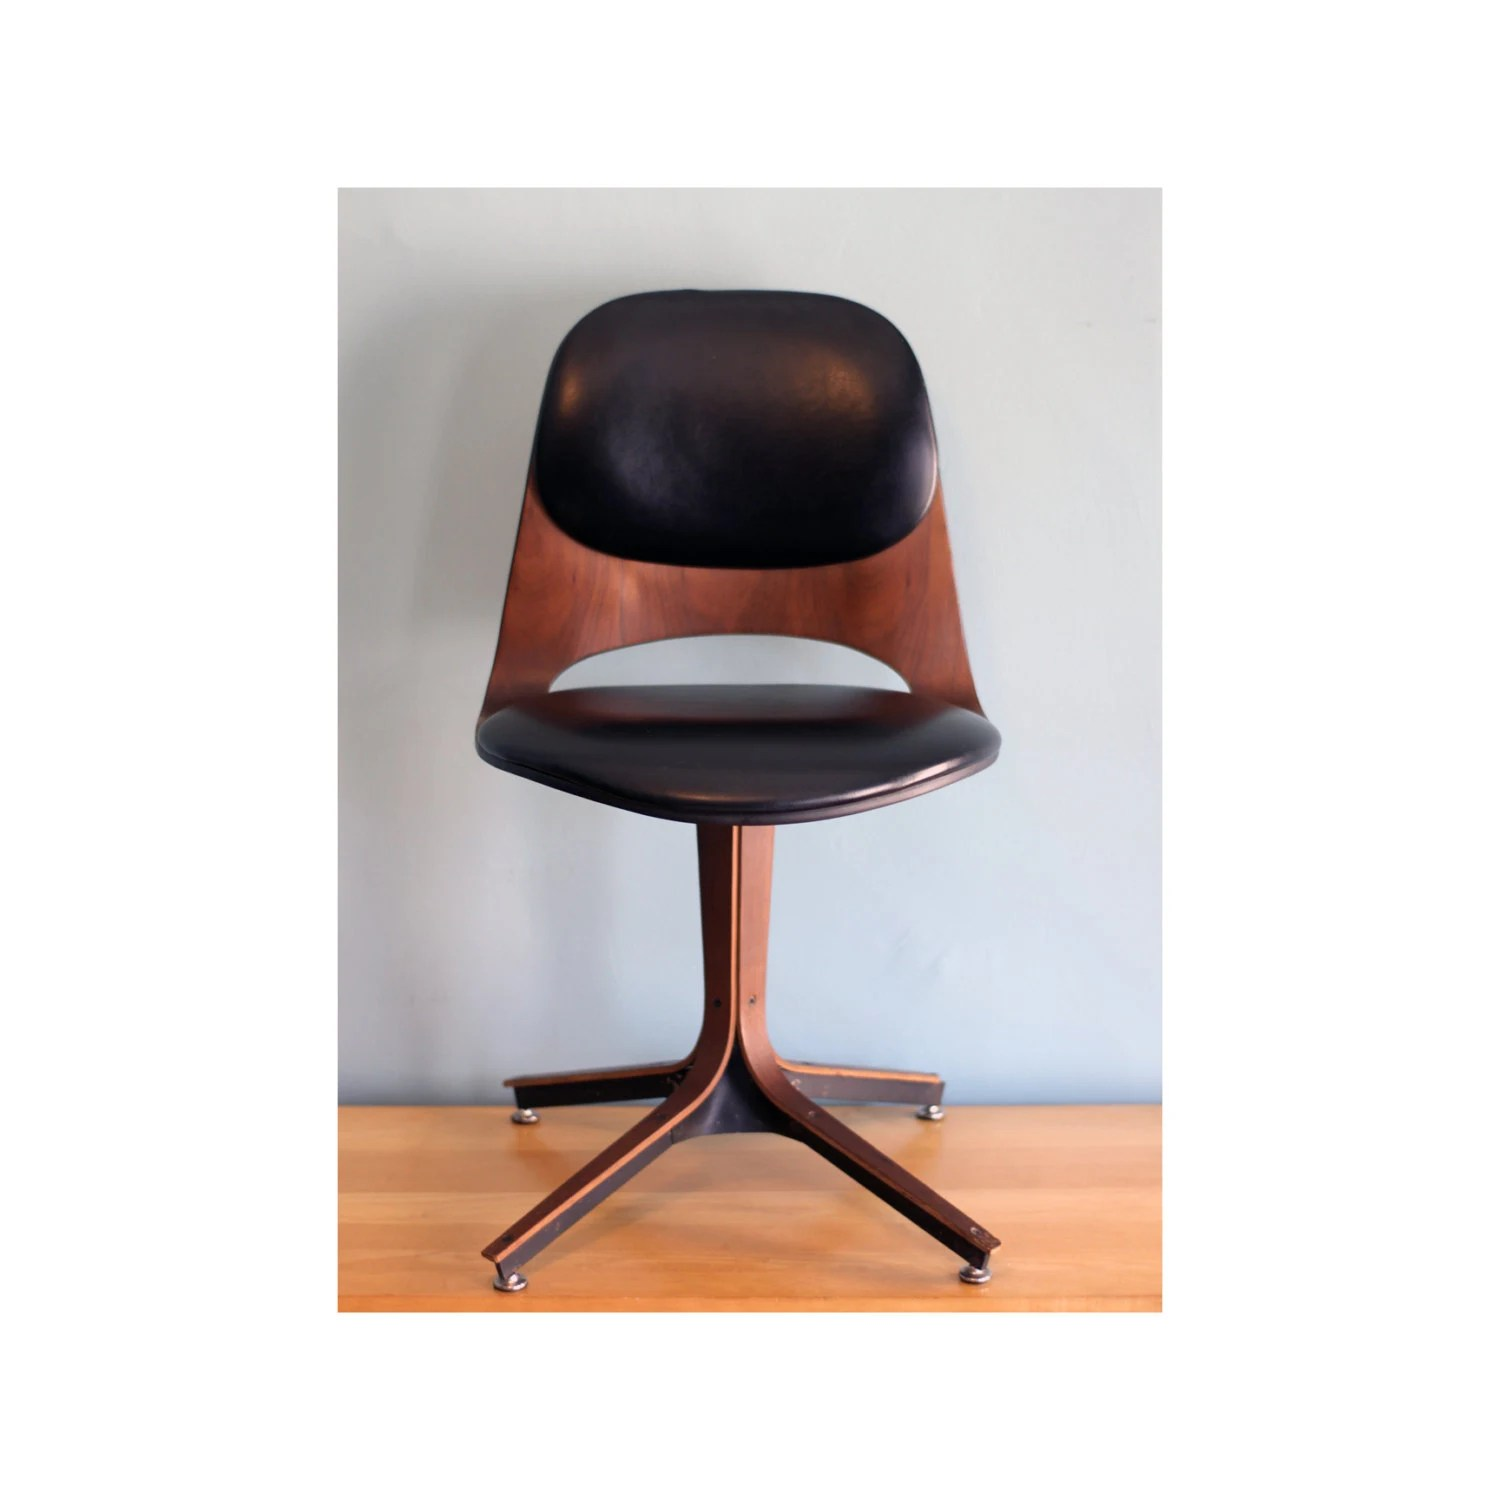 Swivel Desk Chairs Plycraft Swivel Desk Chair Mid Century Modern By